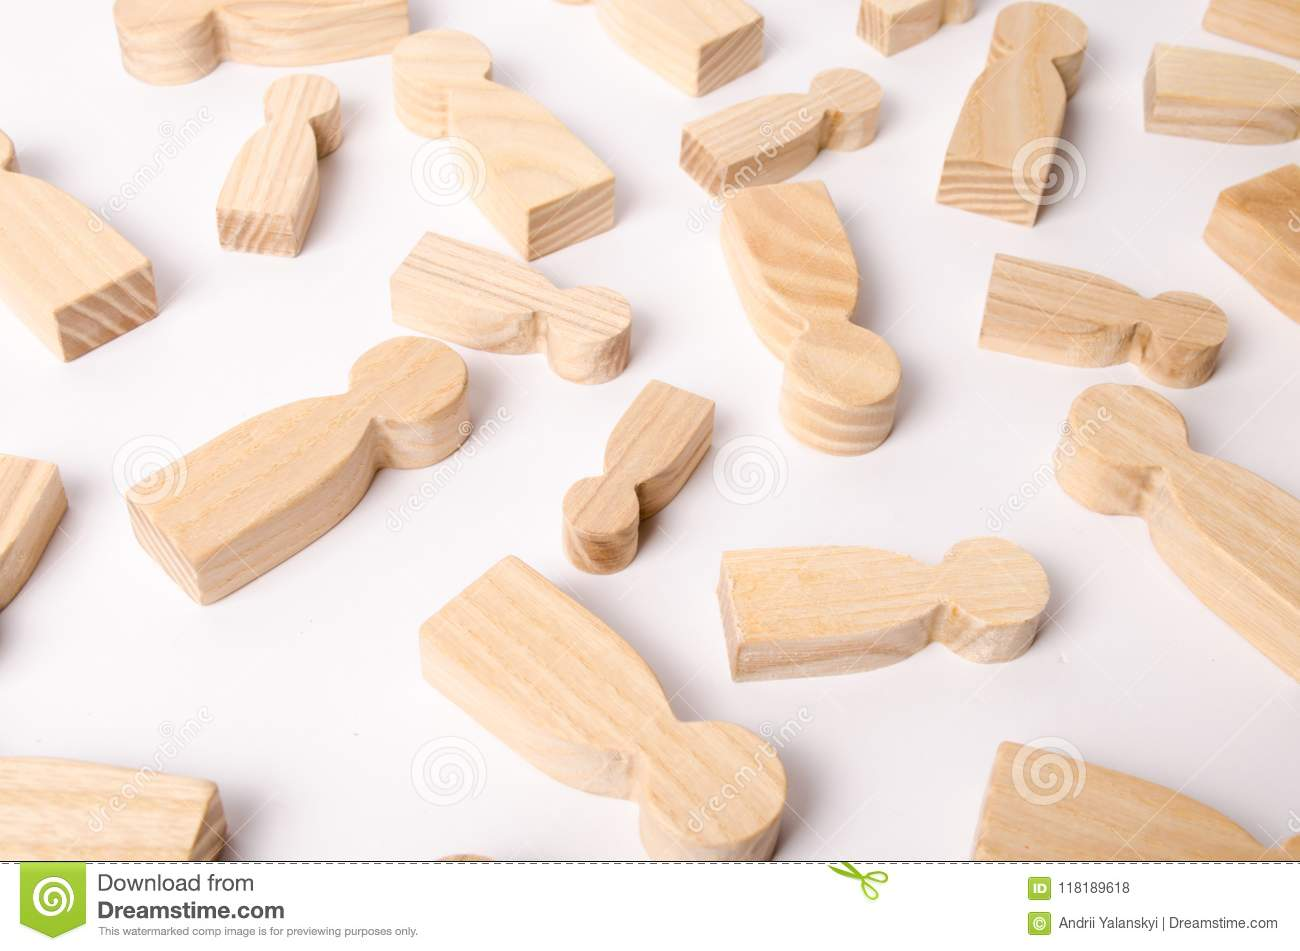 Wooden figures of people are lying on a white background. The concept of human resources management. Headhunters.